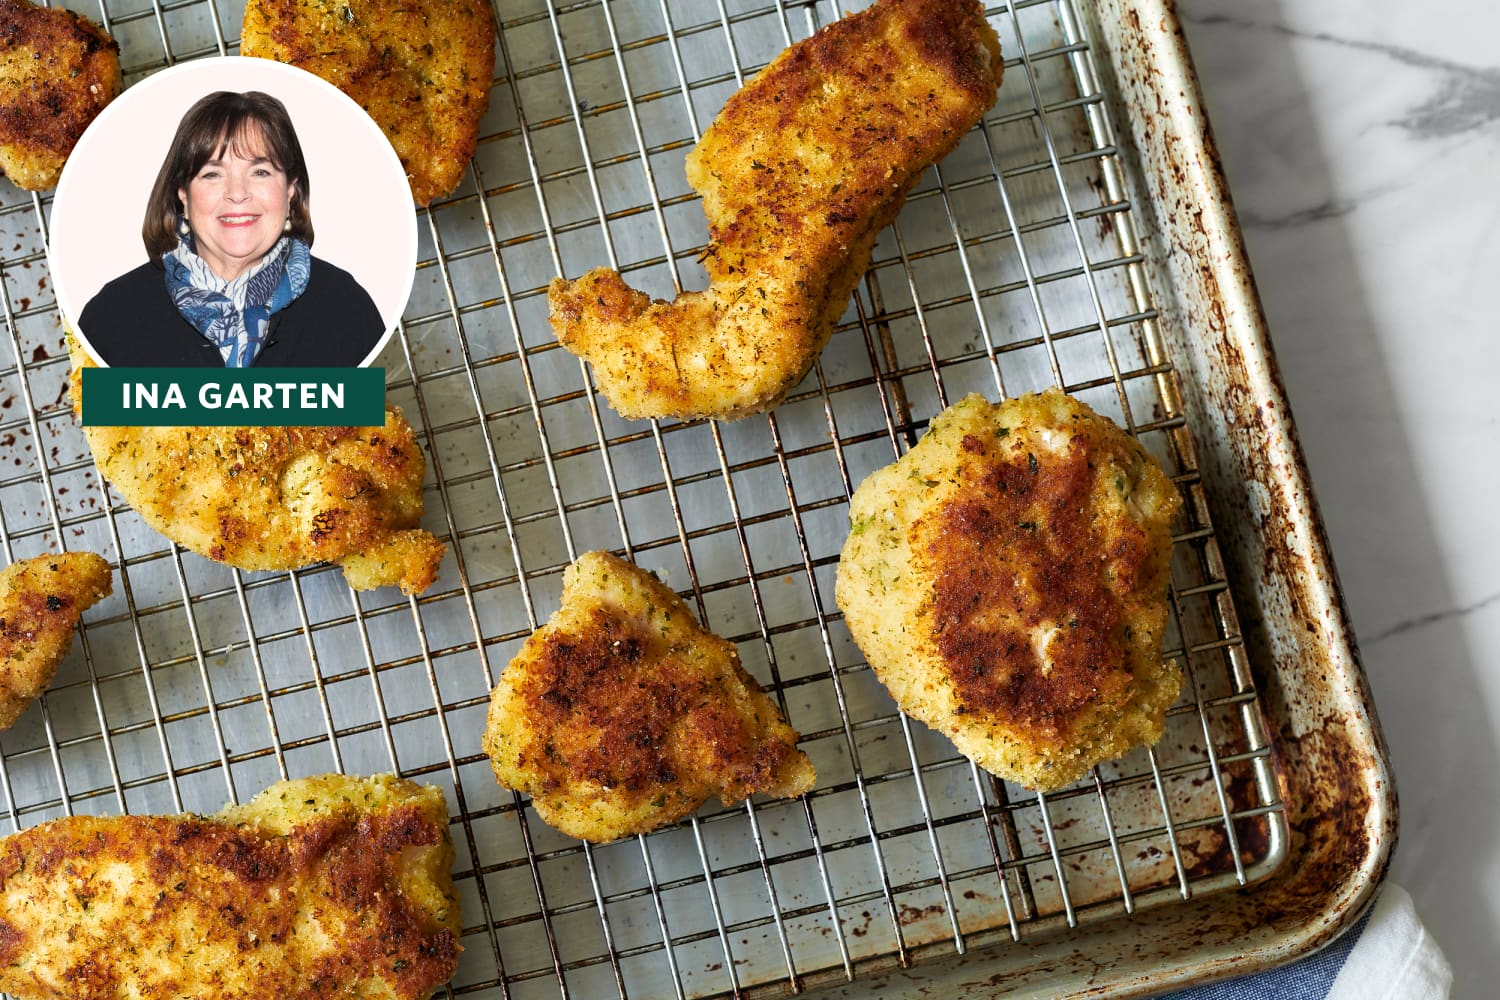 The One Ina Garten Recipe I'll Never Make Again